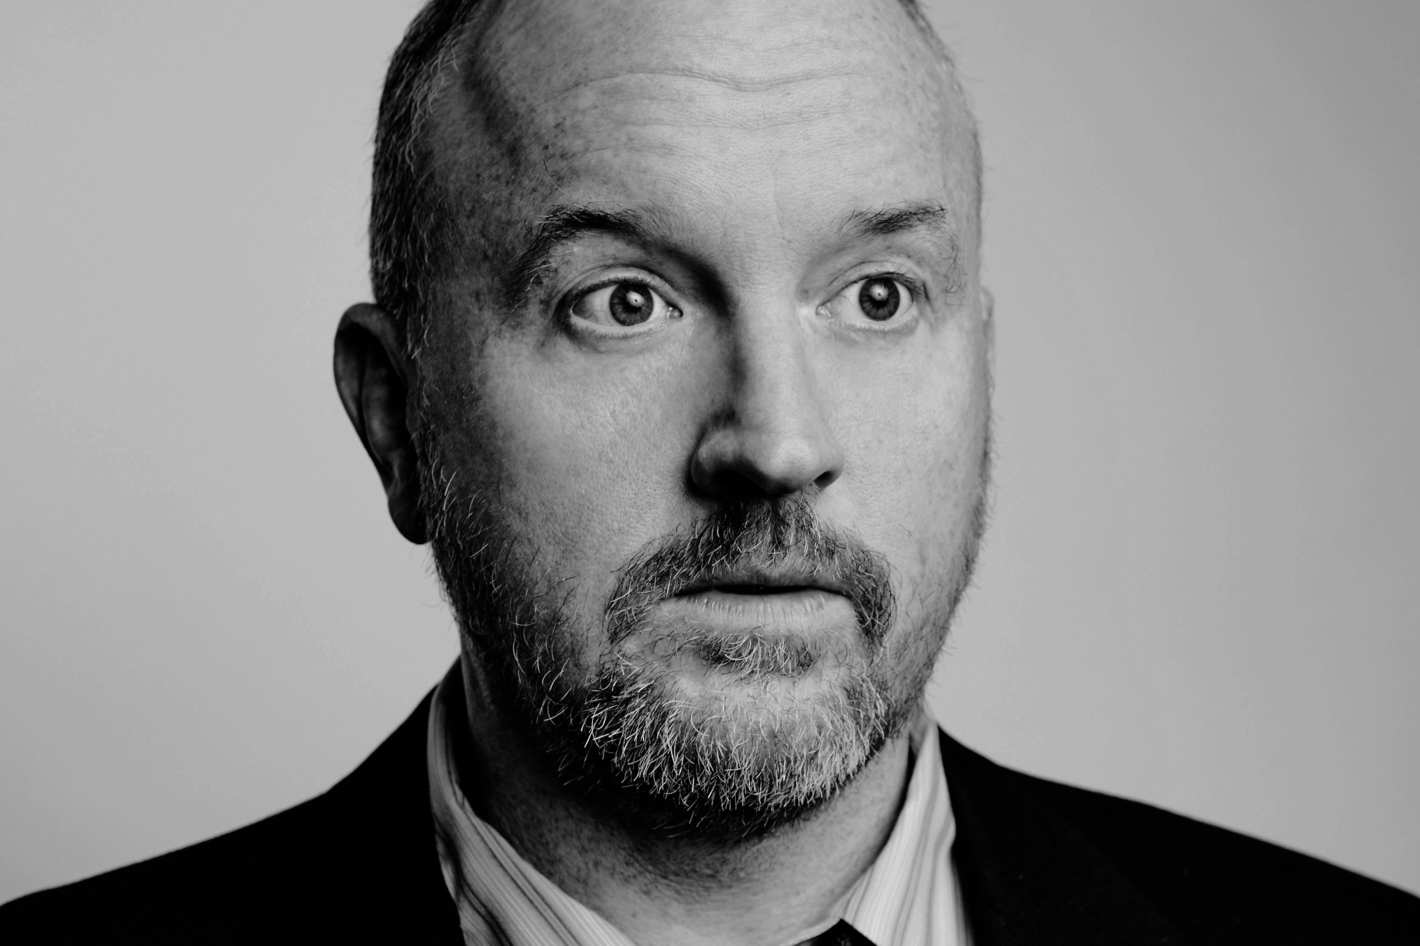 Fellow New York standups and club owners debate how the disgraced comic could return to the stage and the spotlight For years Louis CK performed